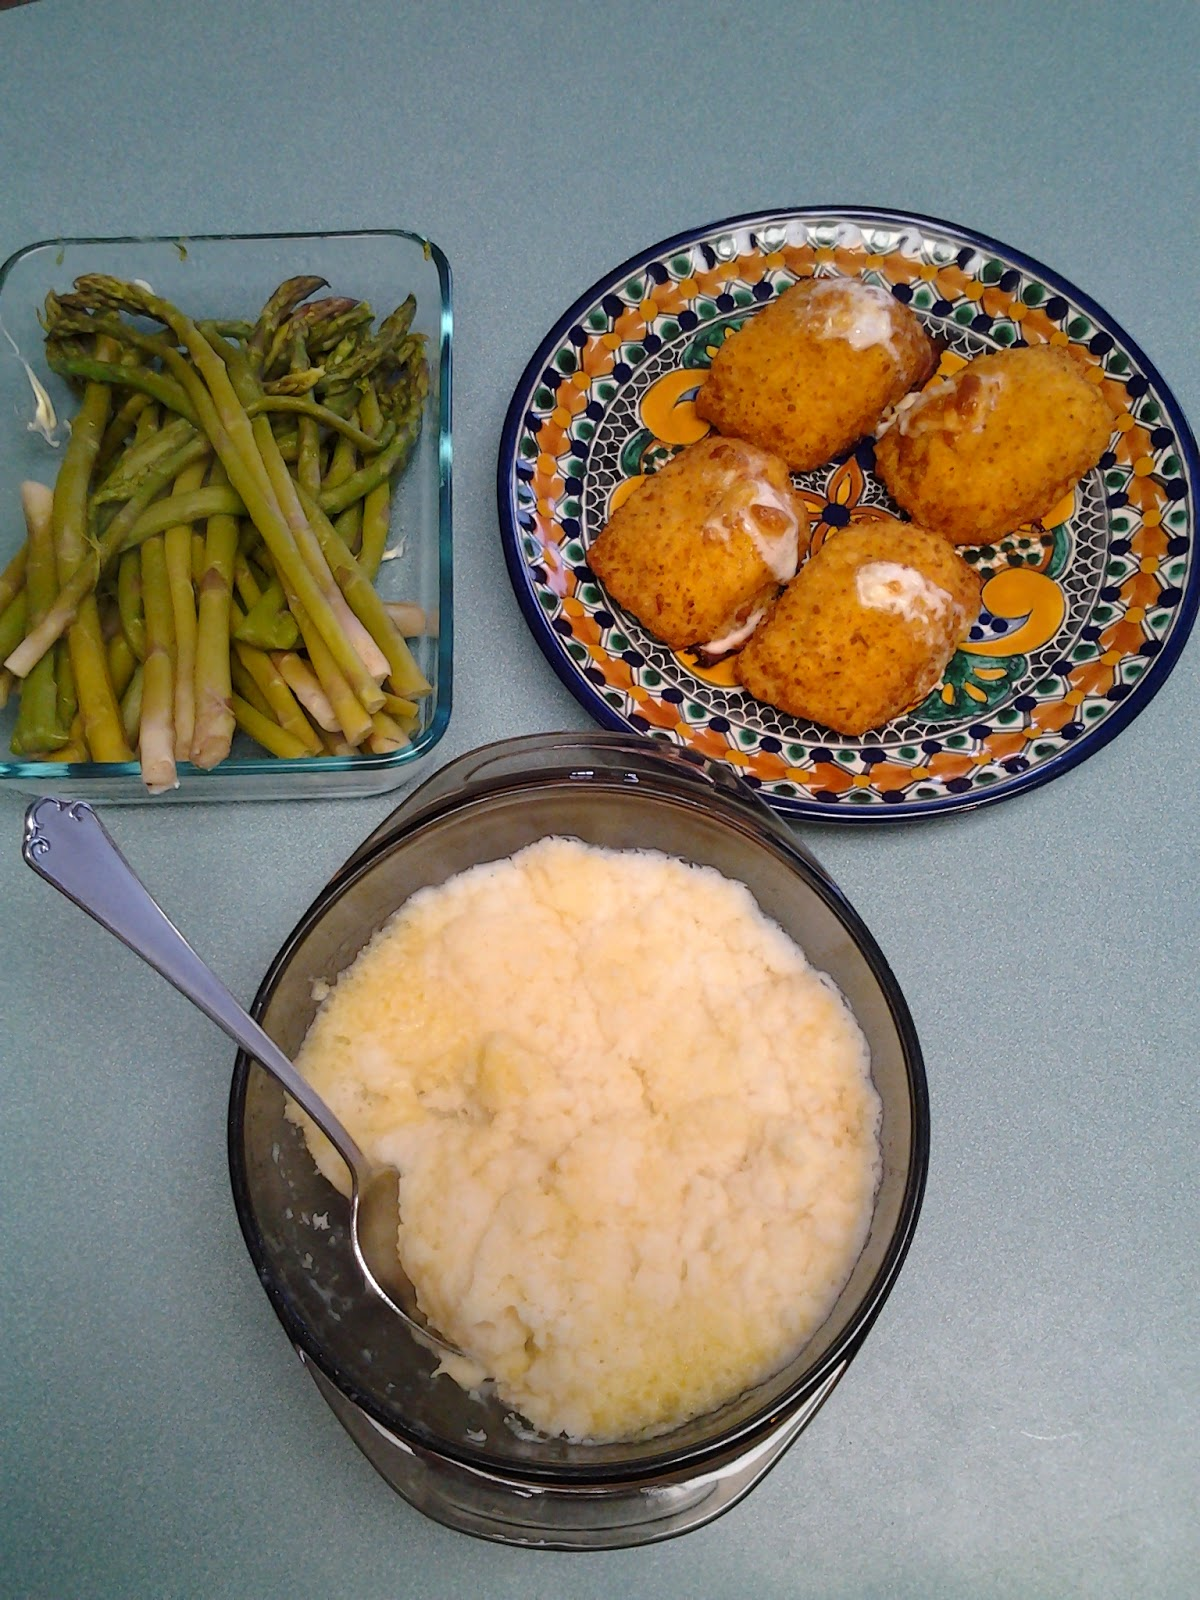 My Stockpile Supper - en Cordon Bleu with Asparagus and Mashed ... on microwave chicken, microwave grits, microwave pie, microwave baked potatoes, microwave red potatoes, yams vs sweet potatoes, microwave seasoned potatoes, microwave sweet potatoes, microwave scalloped potatoes, microwave boiled potatoes, microwave pot roast, microwave baby potatoes, microwave potato recipes, microwave cornbread, microwave lasagna, microwave baked potato plastic wrap, microwave hash brown potatoes, microwave peach cobbler, crazy potatoes, butter gold potatoes,